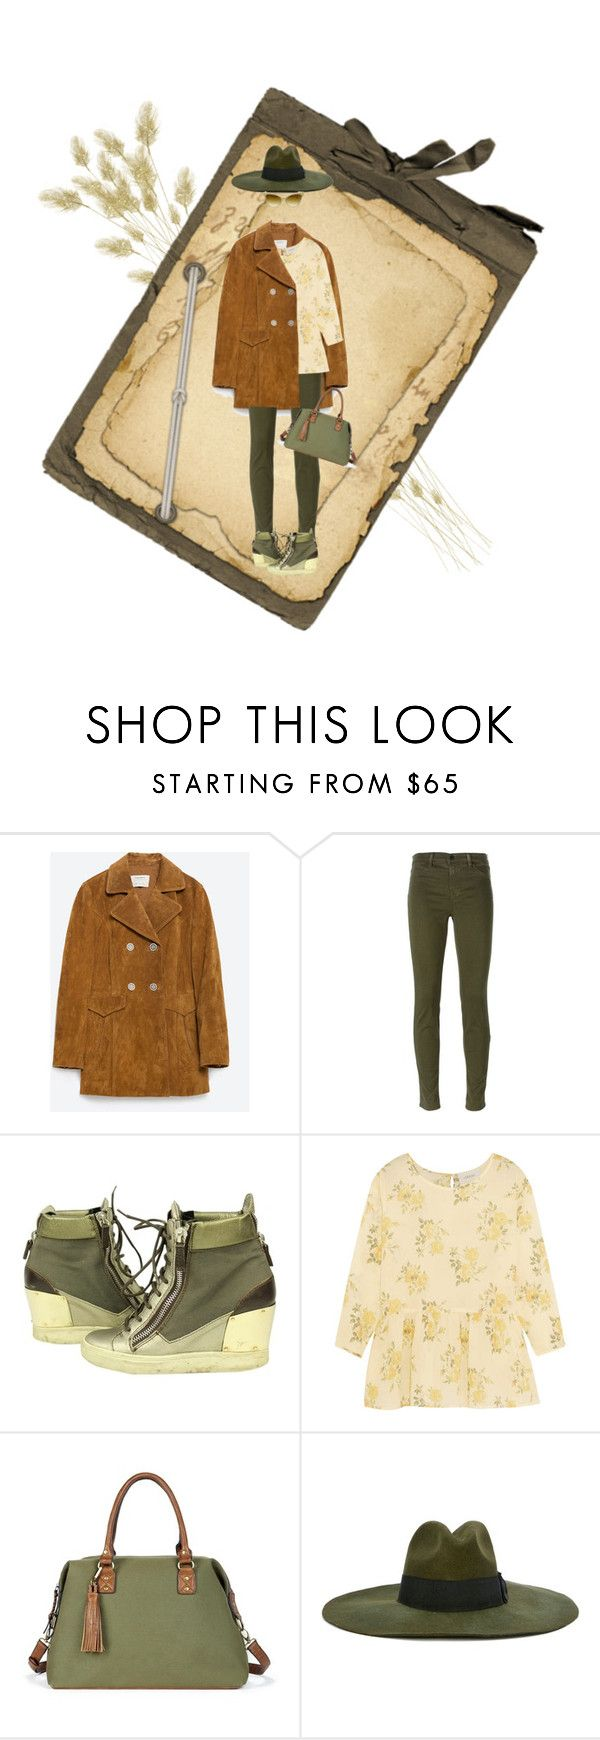 """""""Tan/Army Green"""" by petalp ❤ liked on Polyvore featuring Zara, J Brand, Giuseppe Zanotti, The Great, Sole Society, Diesel, women's clothing, women, female and woman"""